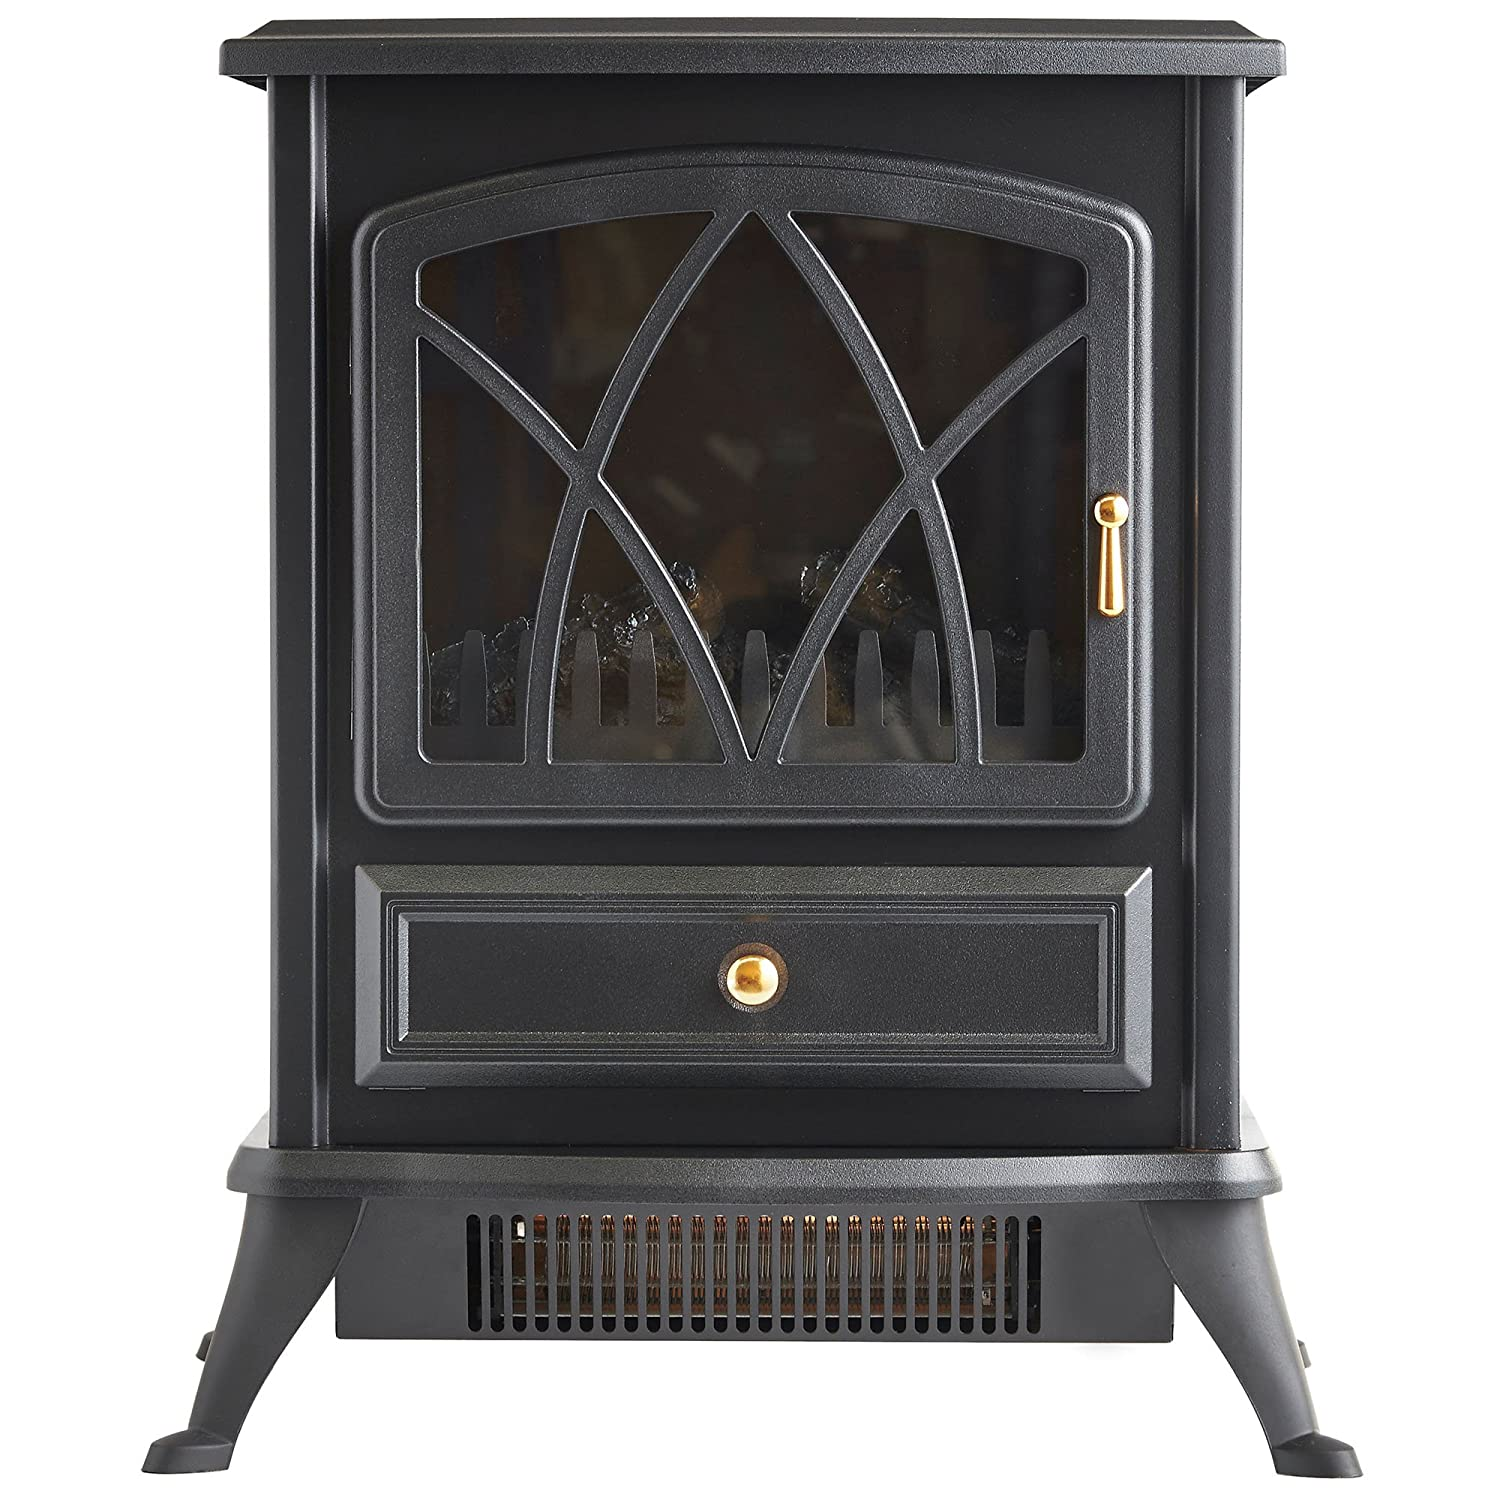 Amazon.com: VonHaus Free Standing Electric Stove Heater Portable Home  Fireplace With Log Burning Flame Effect Adjustable 1500W (16.8W X 10.8L X  20H Inches ...